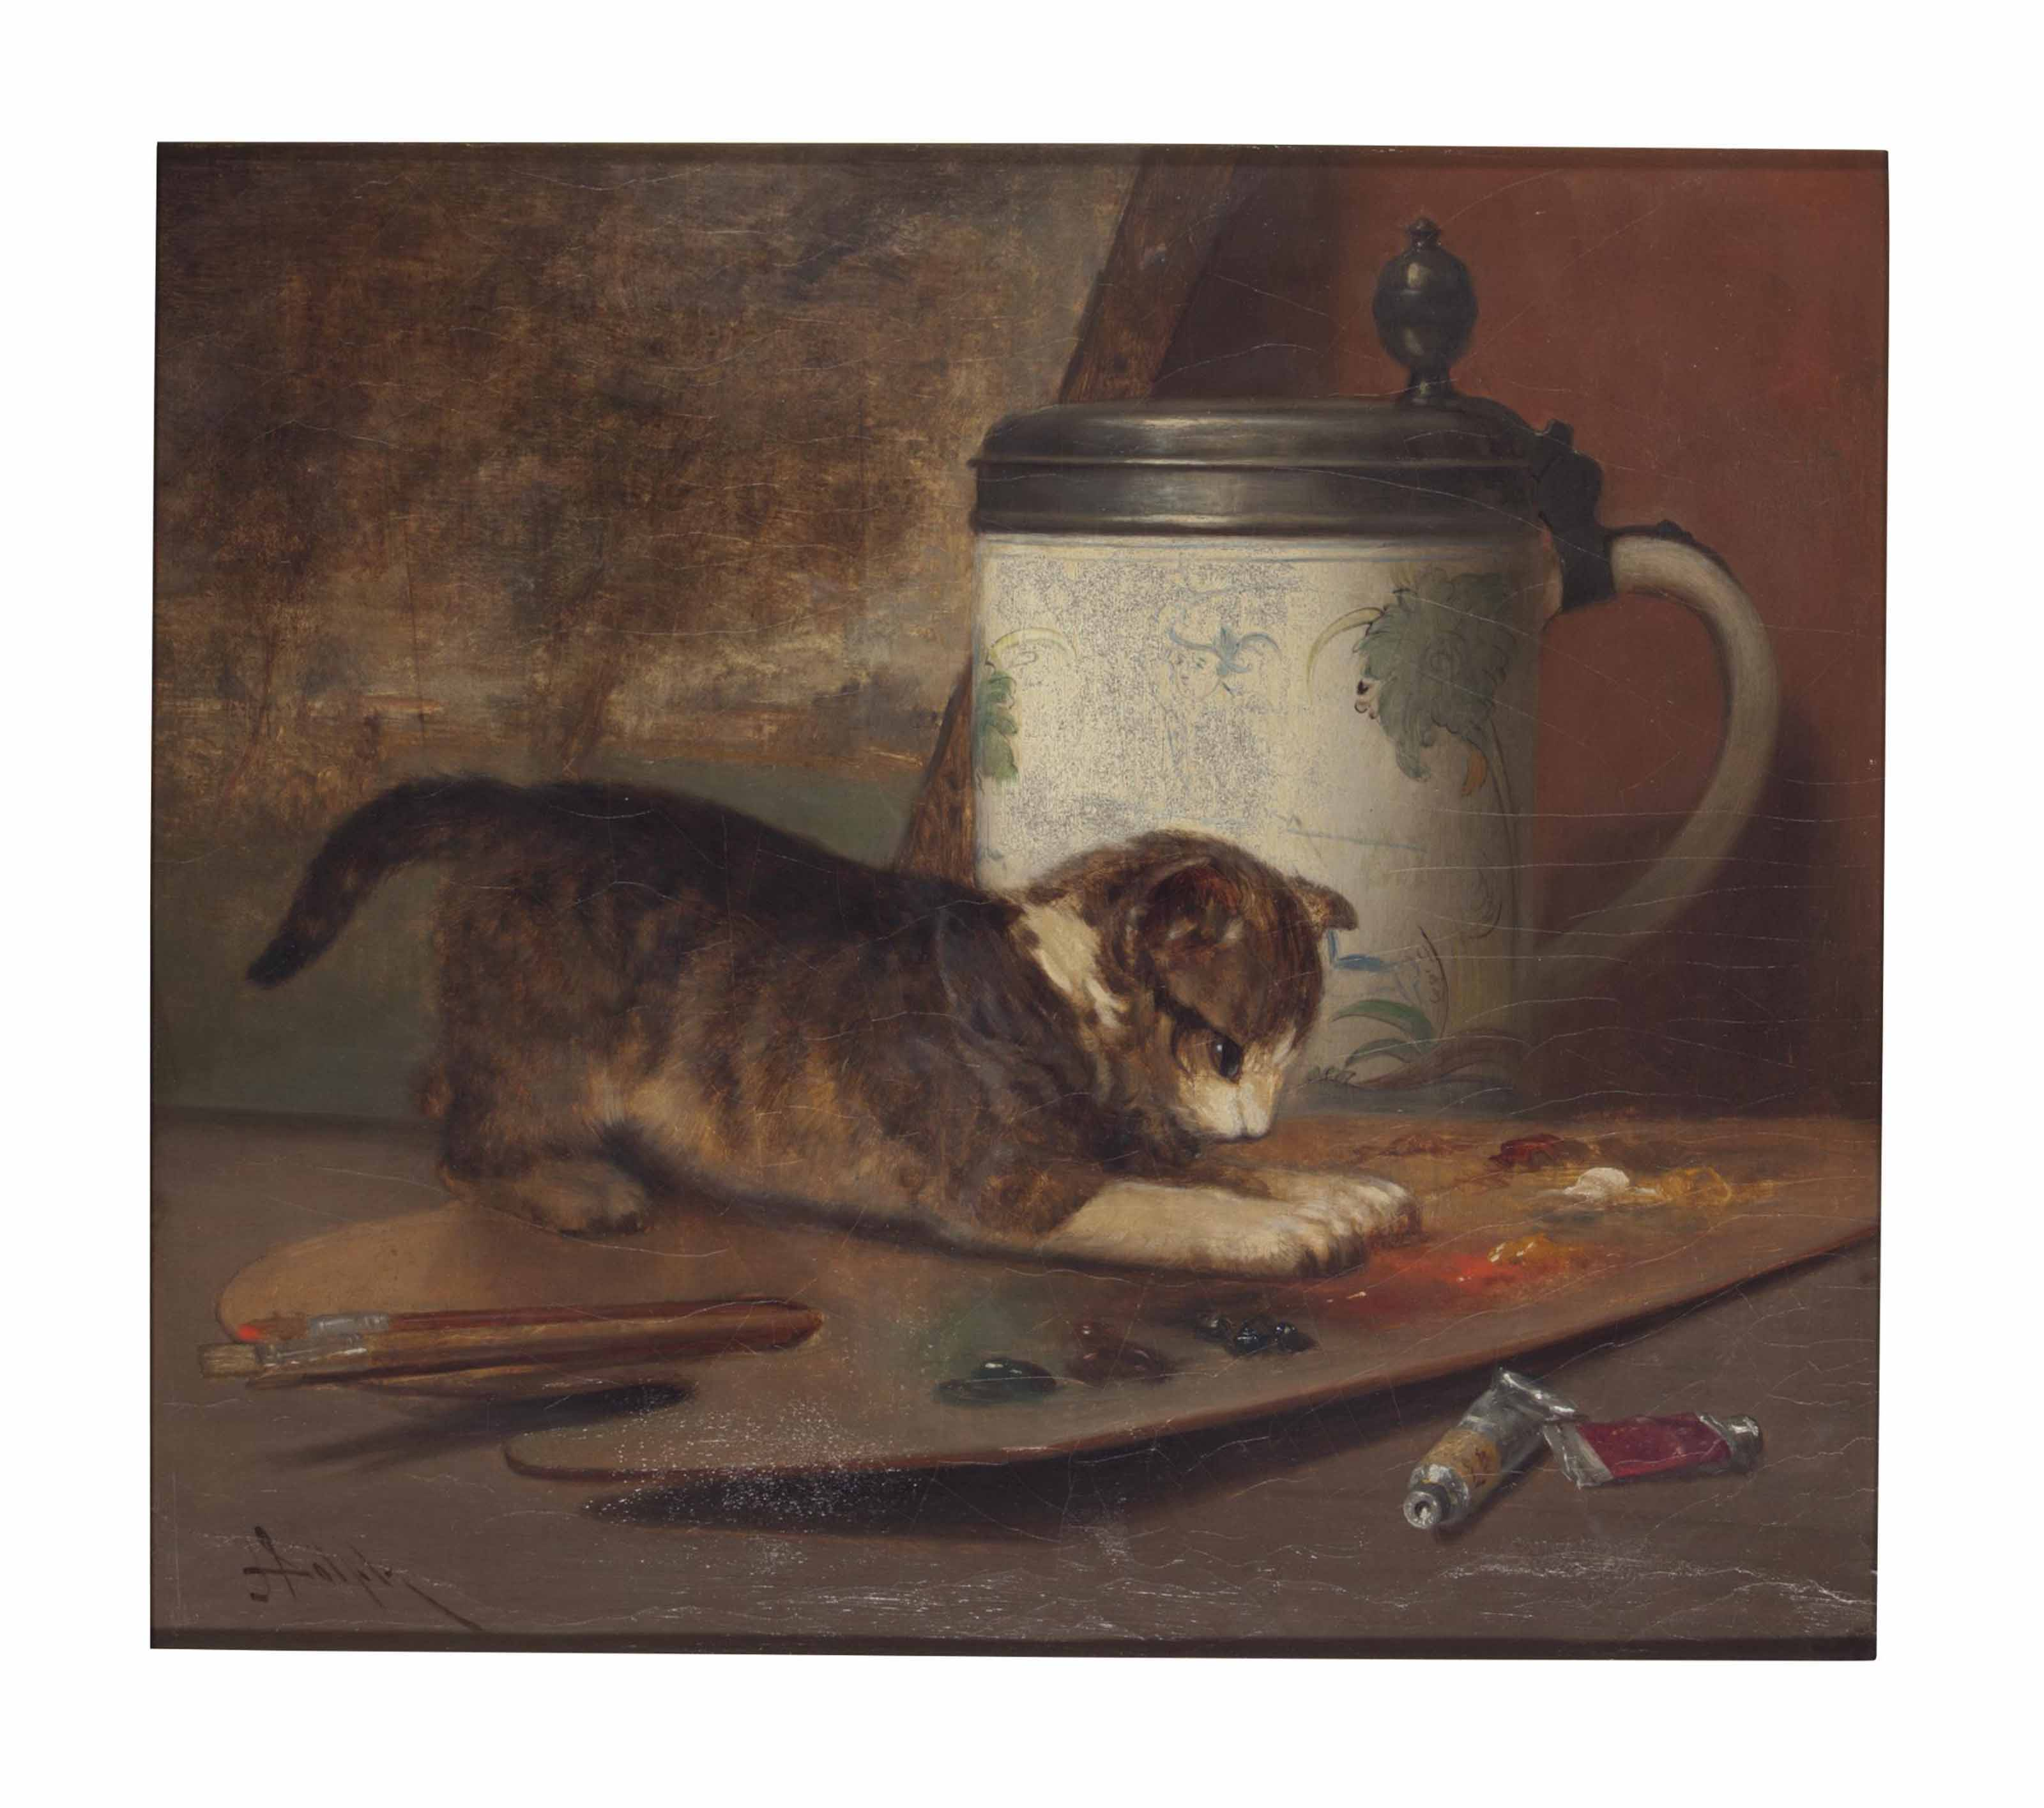 Cat Pawing at Painter's Palette